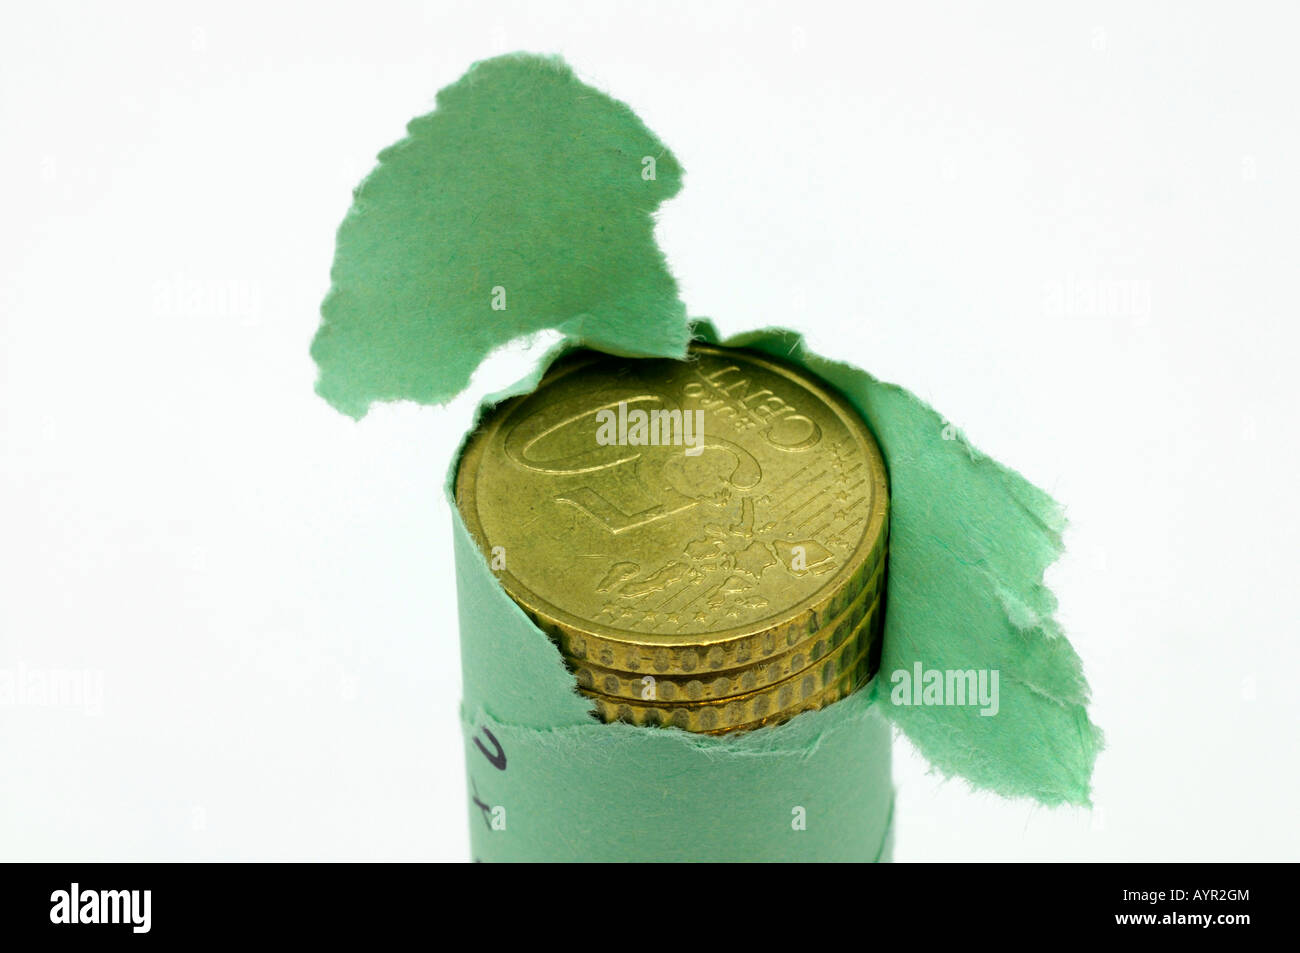 Opened roll of 50-cent Euro coins, cutout - Stock Image